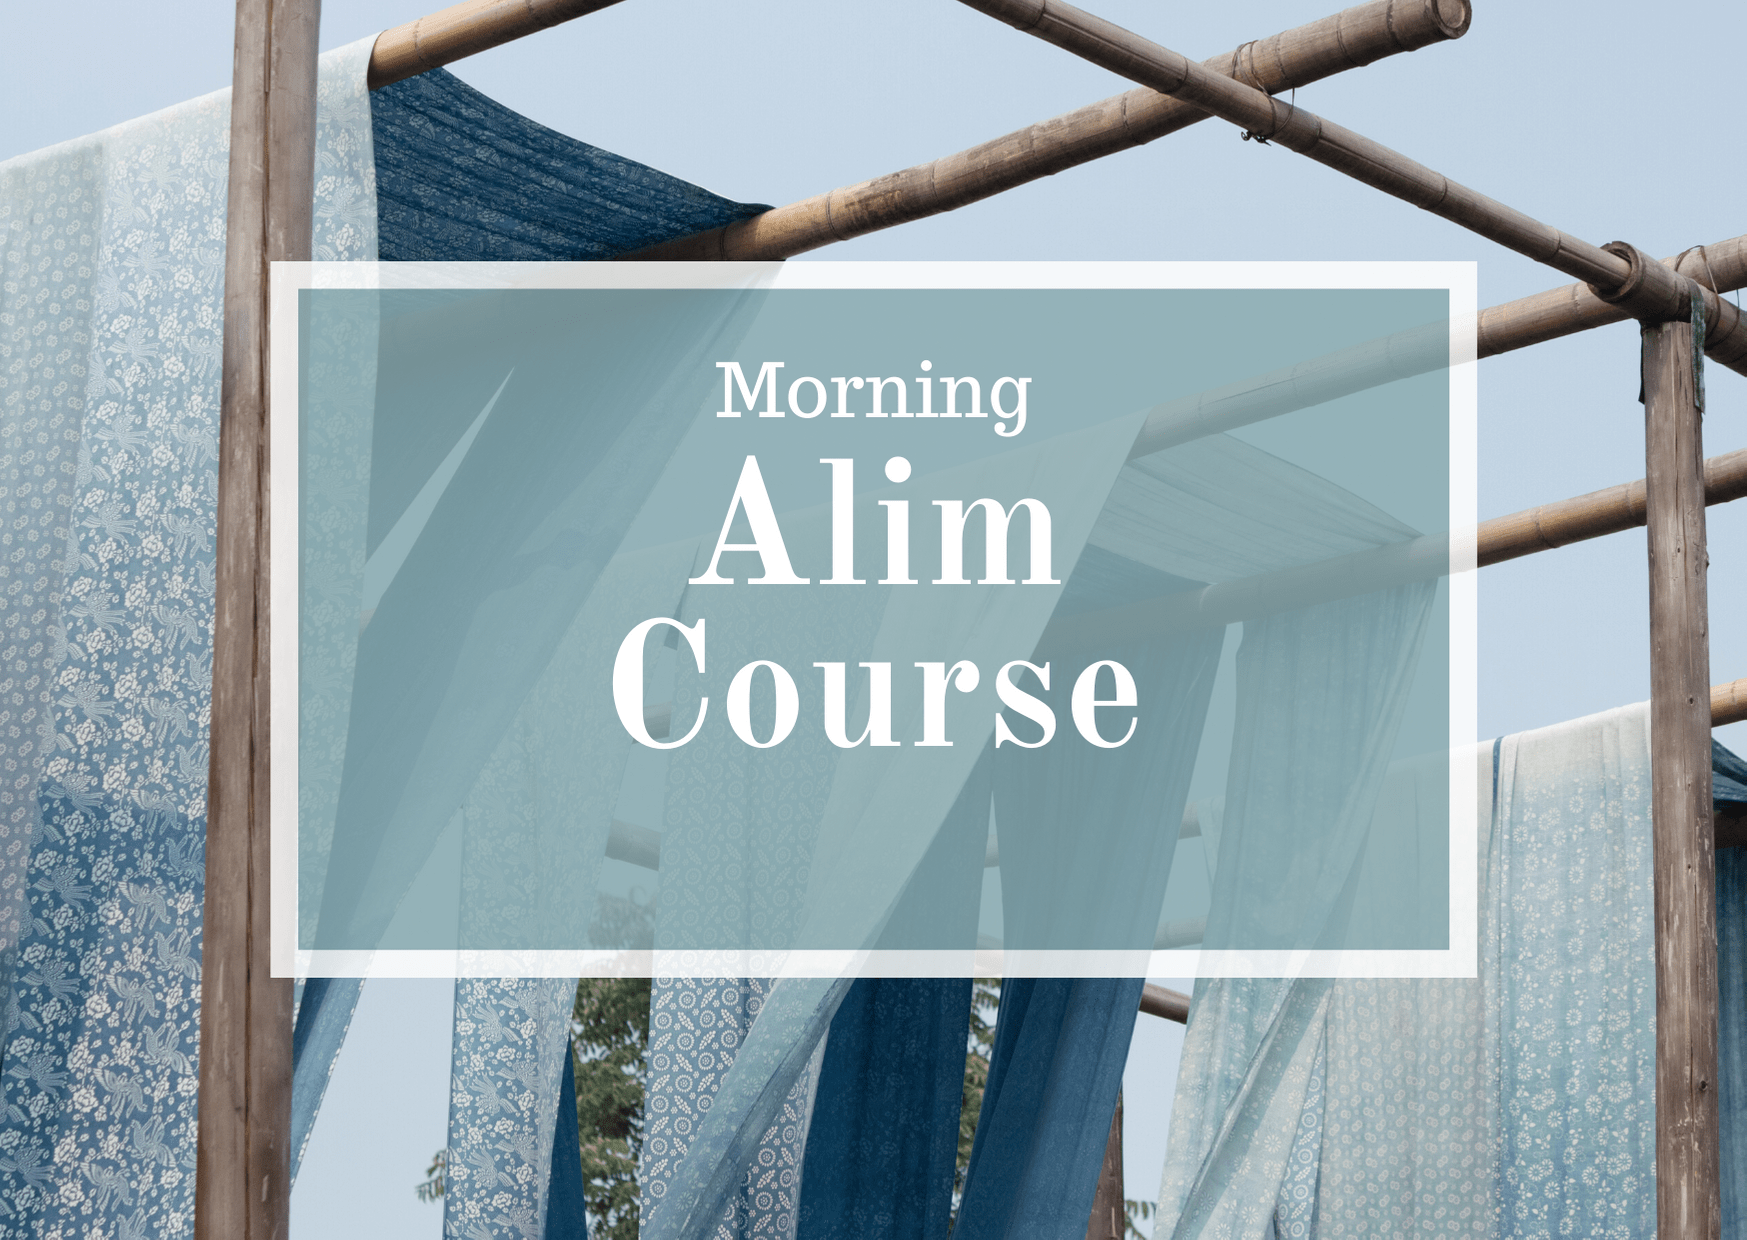 Morning Alim Course